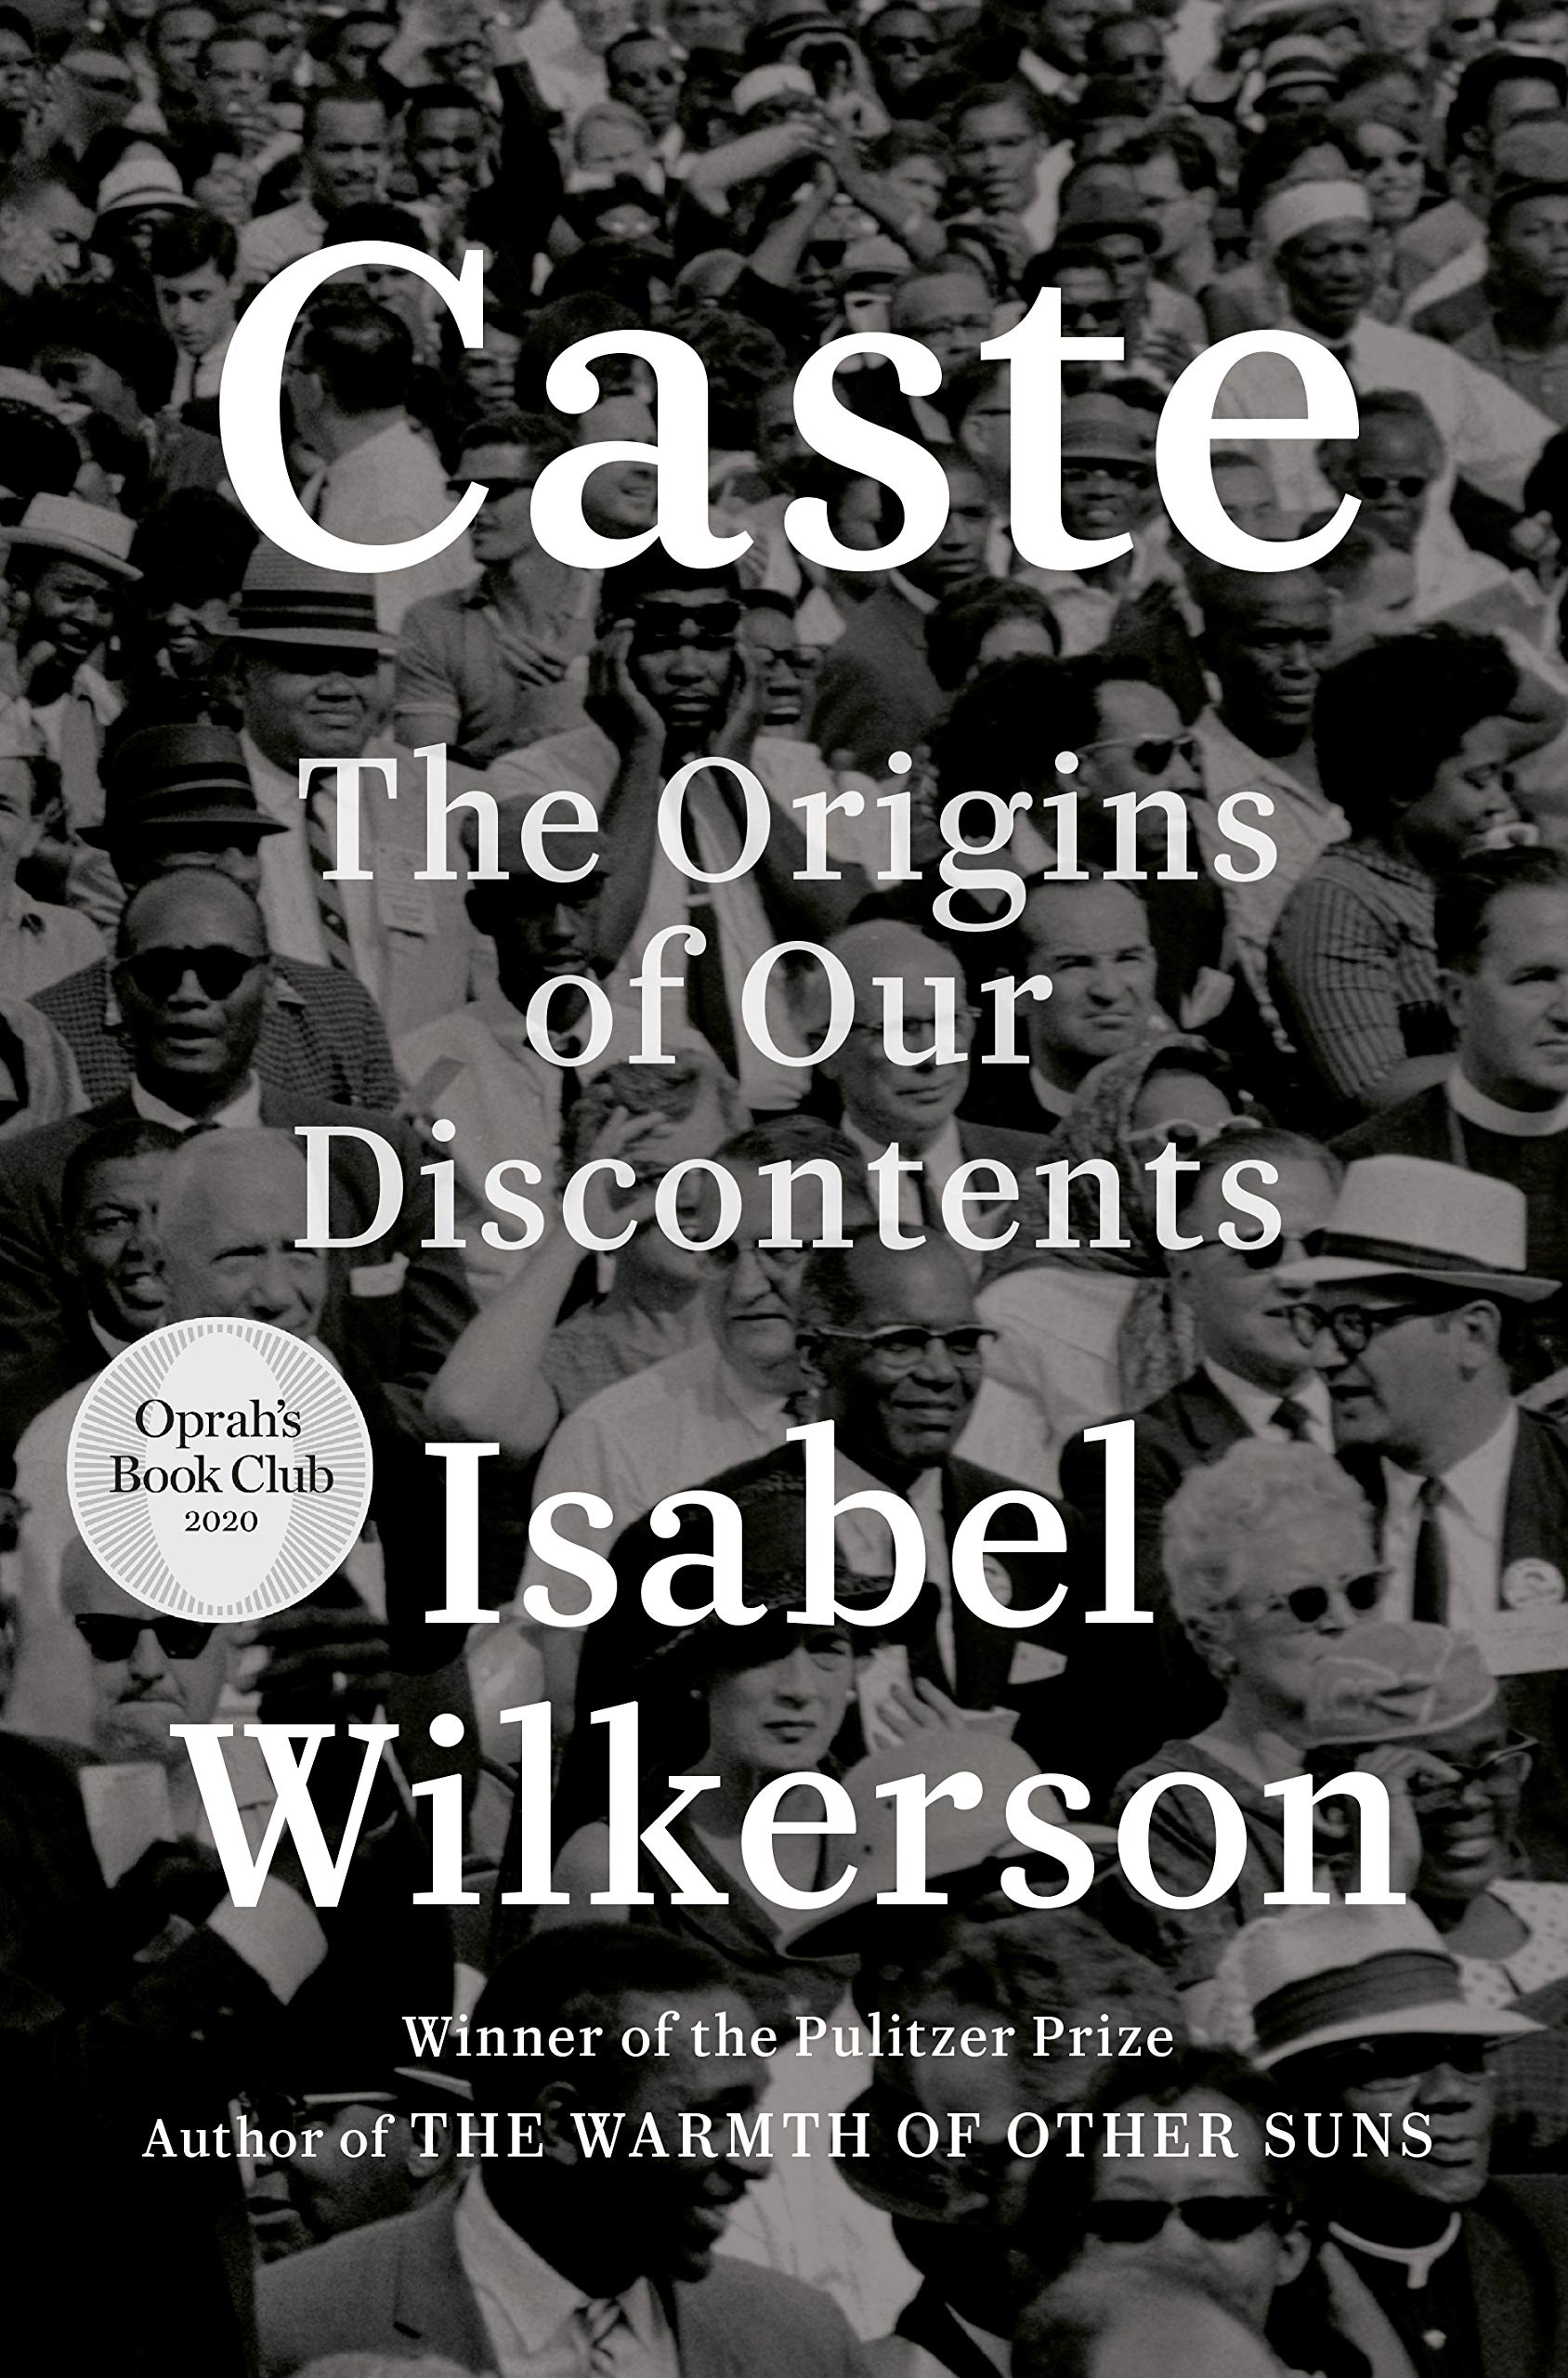 Cover image of Caste by Isabel Wilkerson